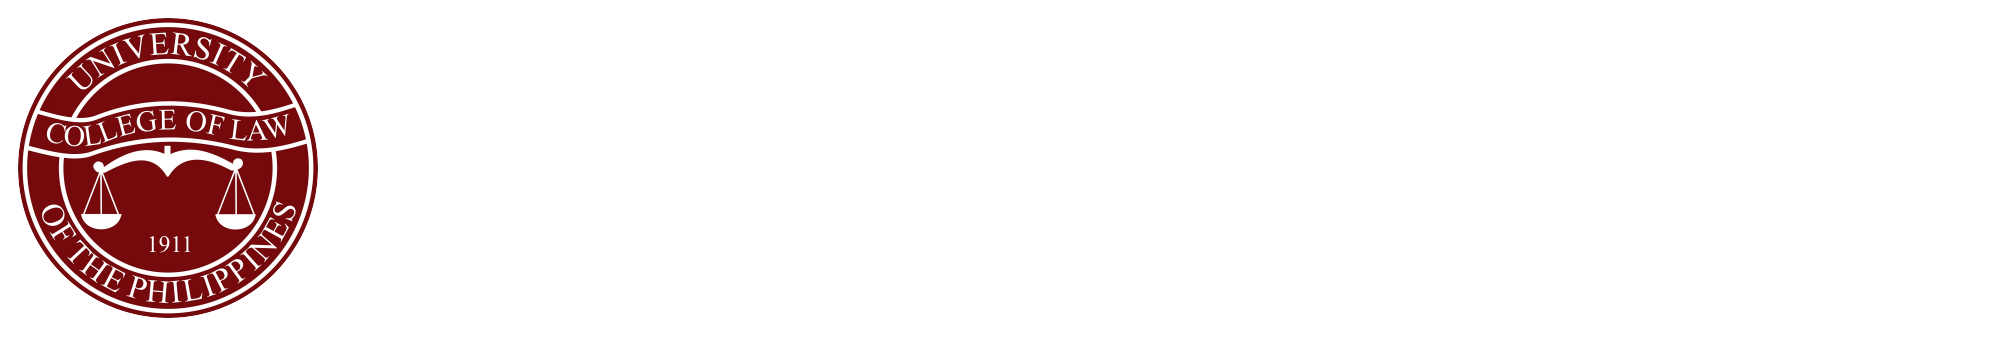 LLM-UP-College-of-Law-Website